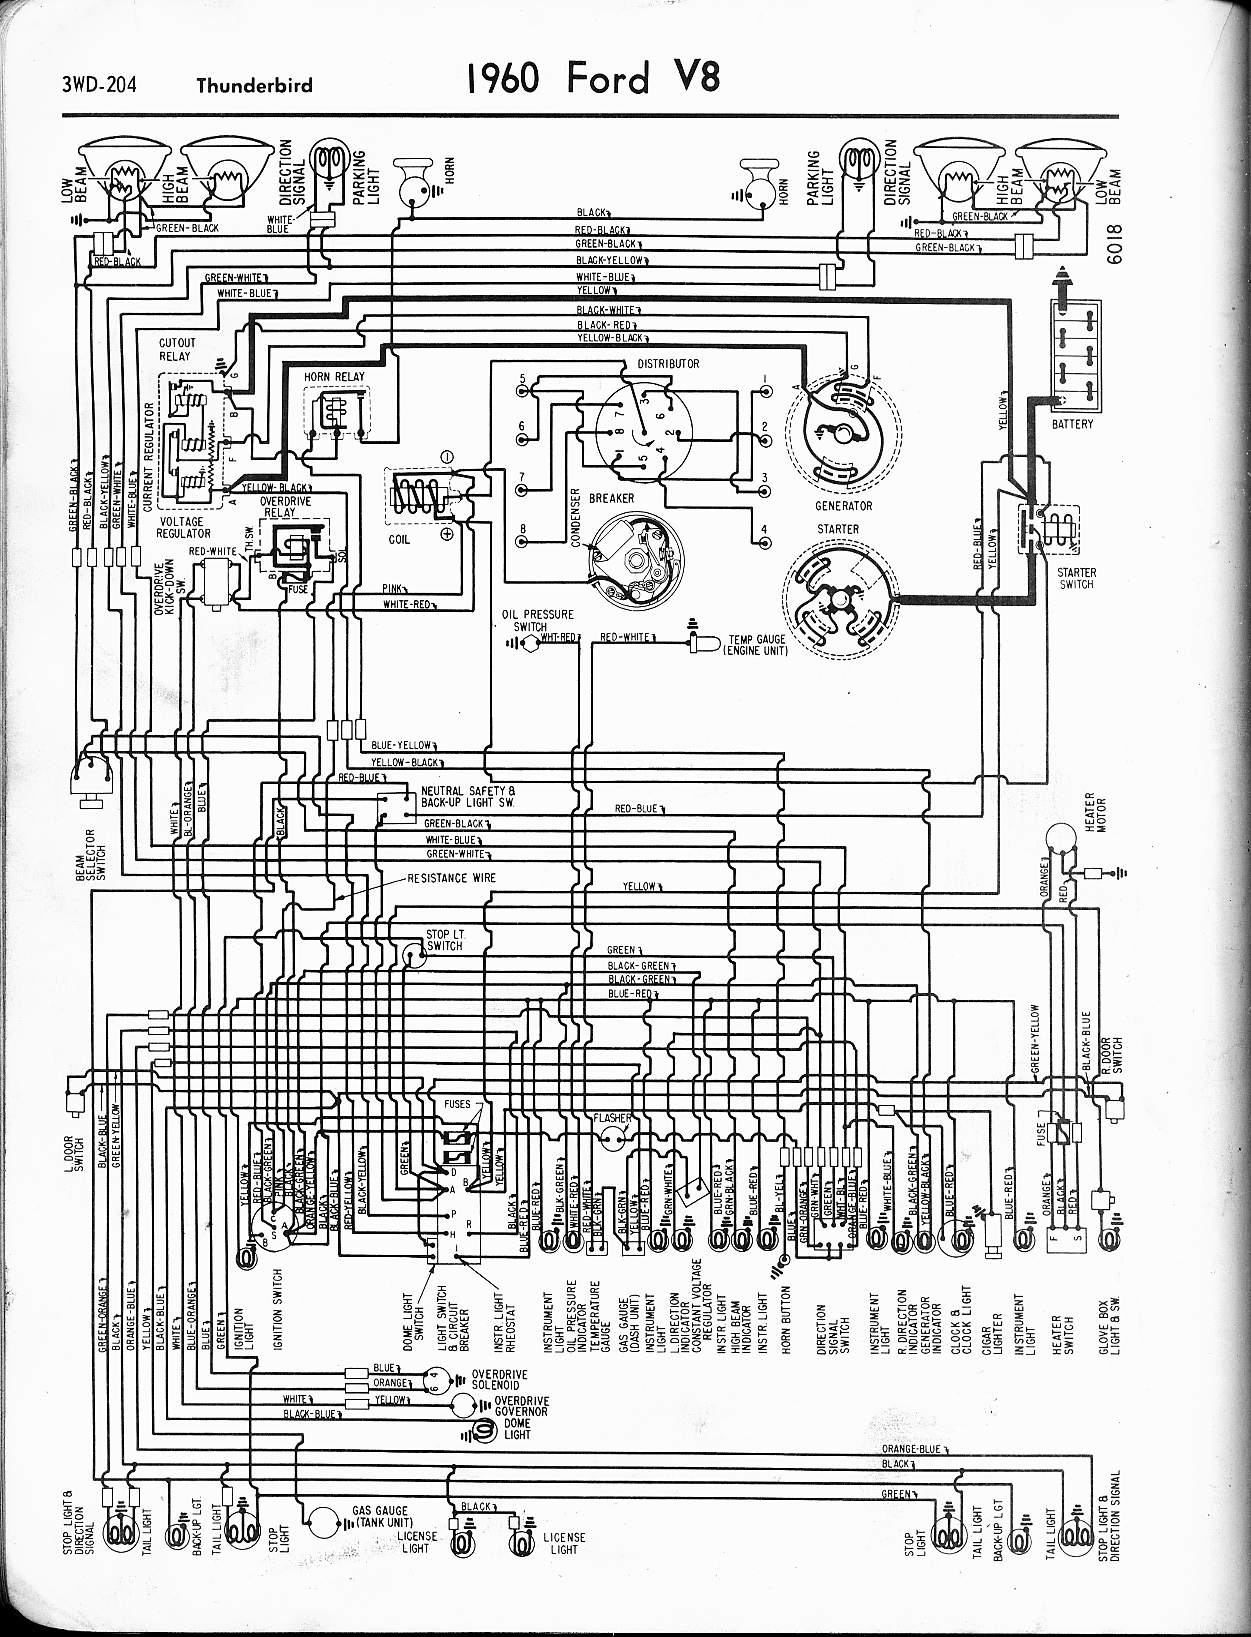 1978 Thunderbird Fuse Box Wiring Diagram Will Be A Thing 1975 Plymouth Valiant Schematic 1988 Ford Festiva Saturn L100 Interior 1976